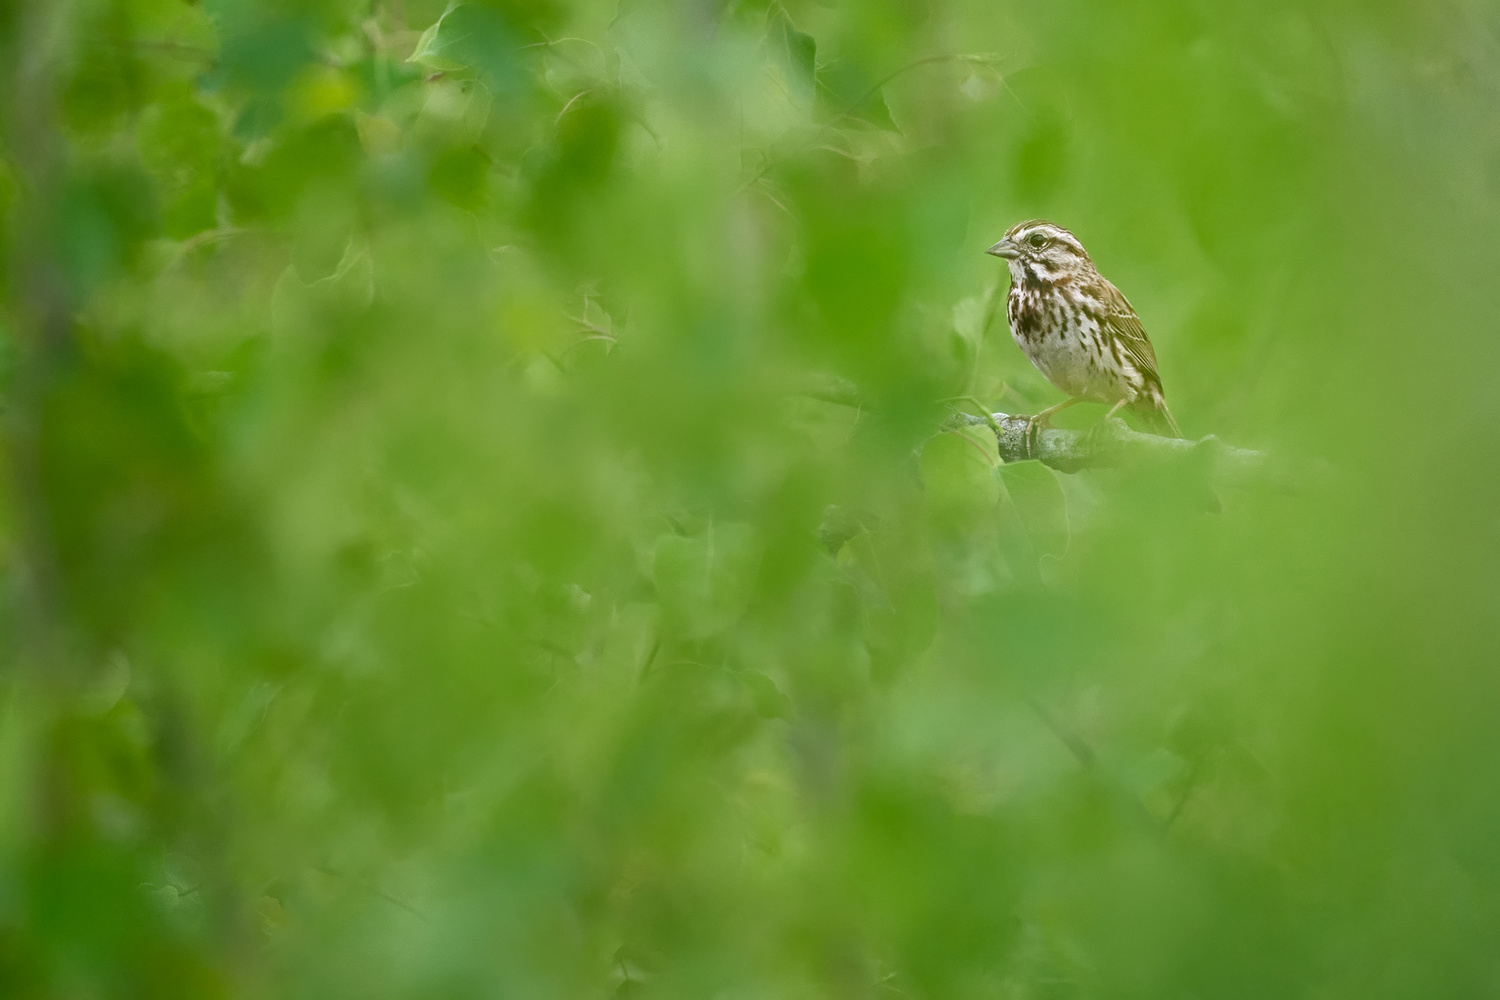 Song Sparrow by Ryan Mense